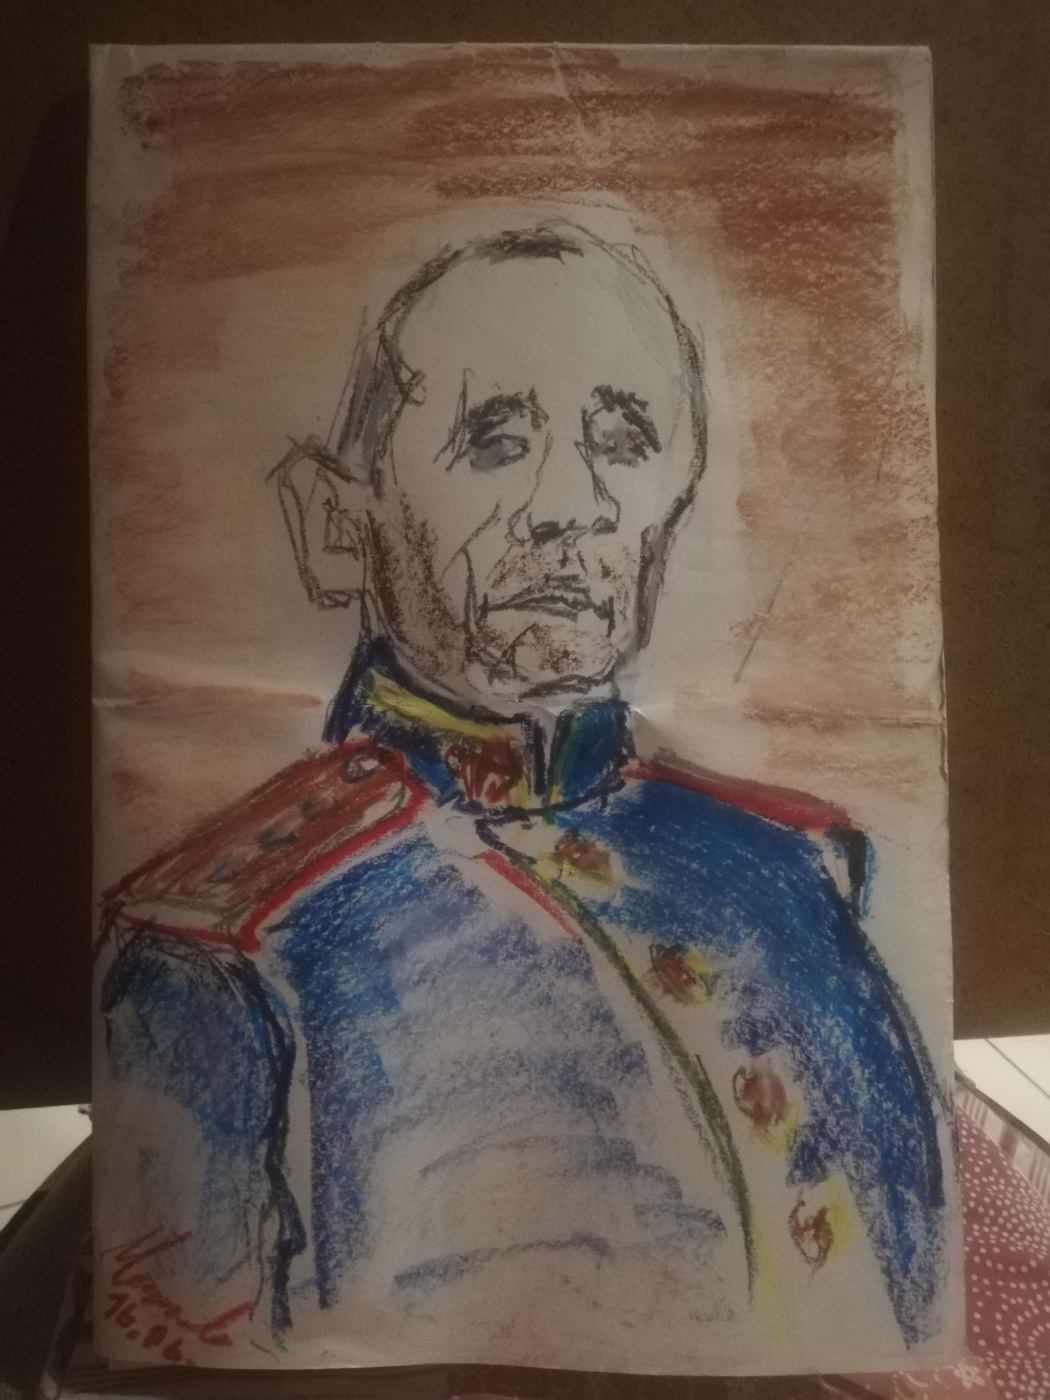 Andrew Markoff. Sketch for the portrait of Art. midshipman 2